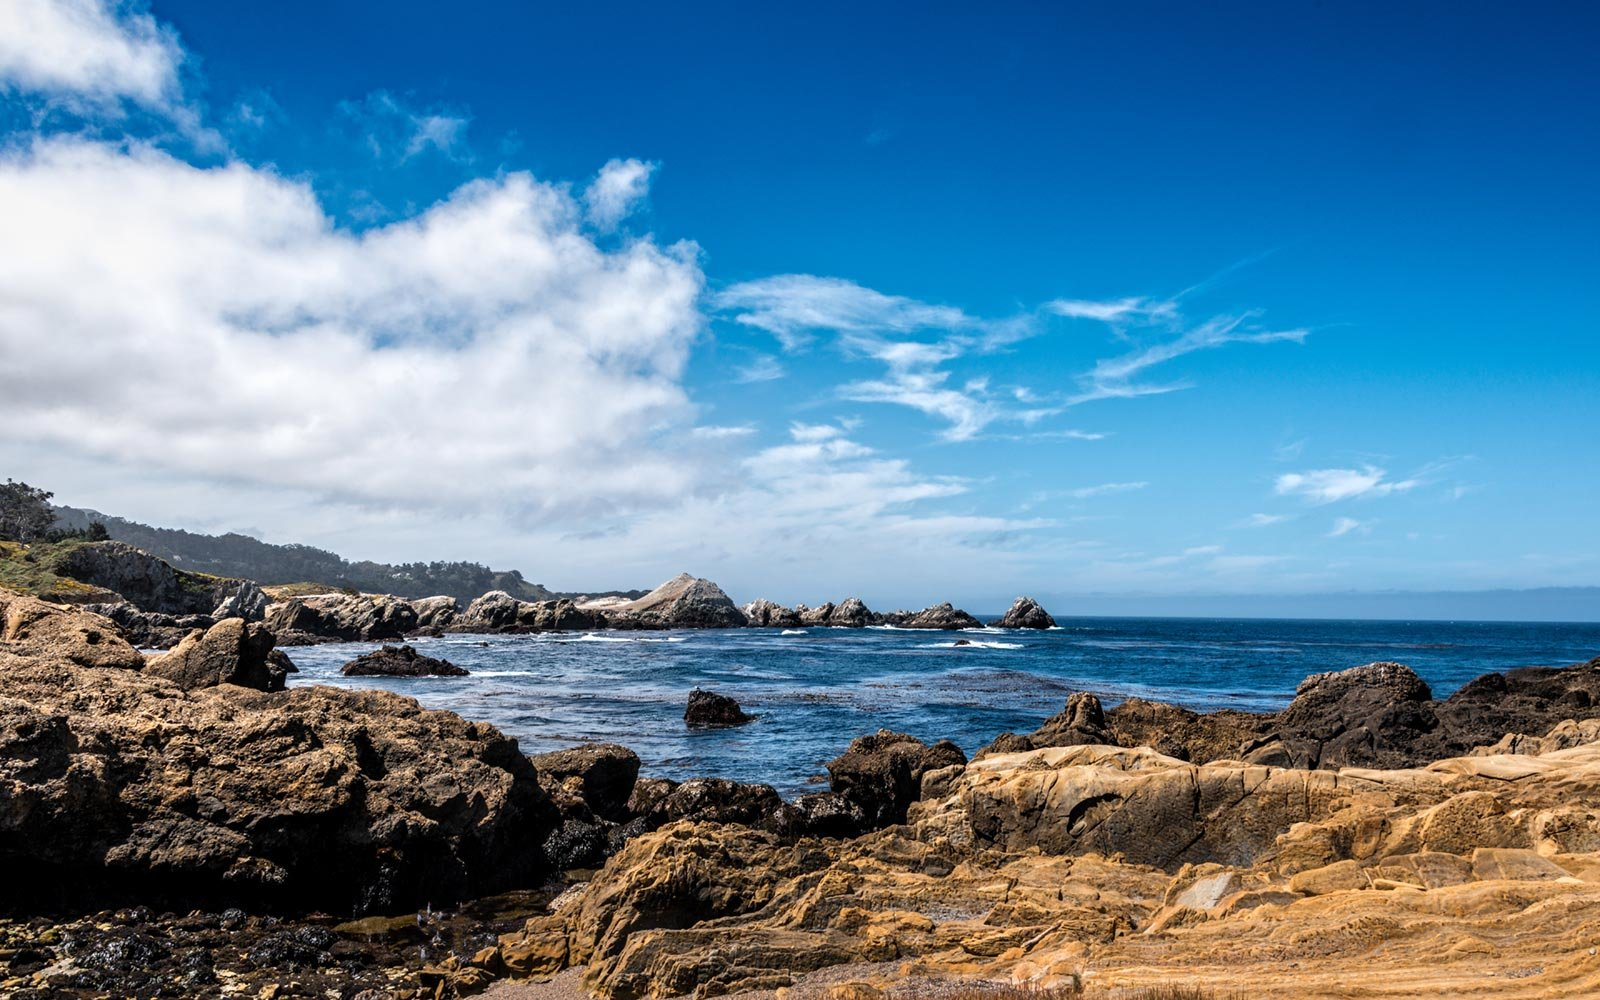 Point Lobos, Carmel Highlands, California